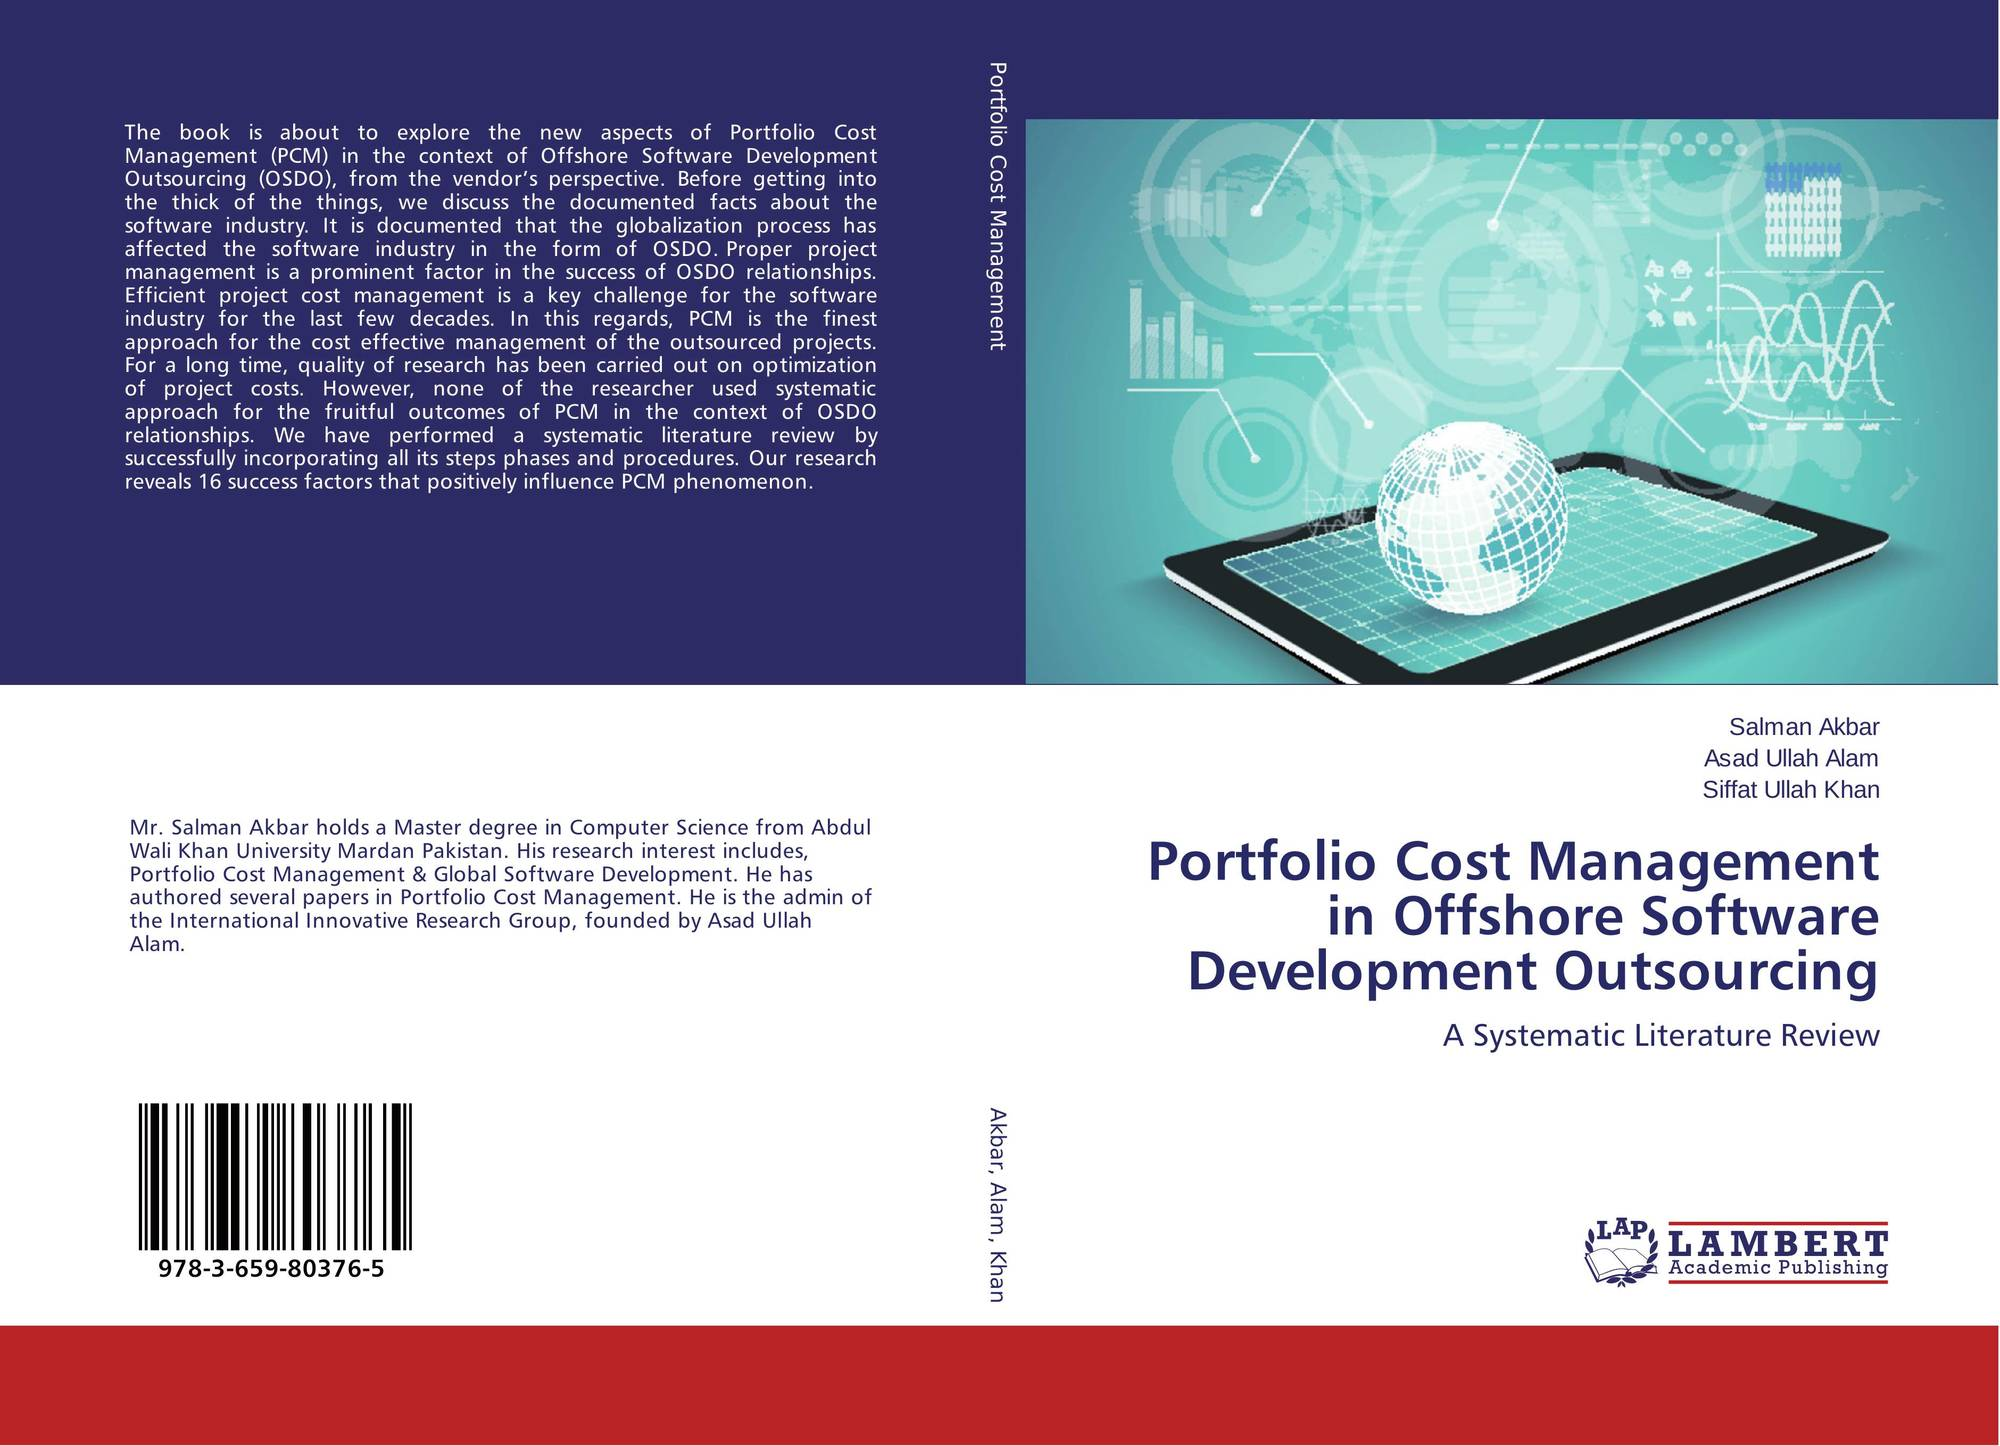 Technology Management Image: Portfolio Cost Management In Offshore Software Development